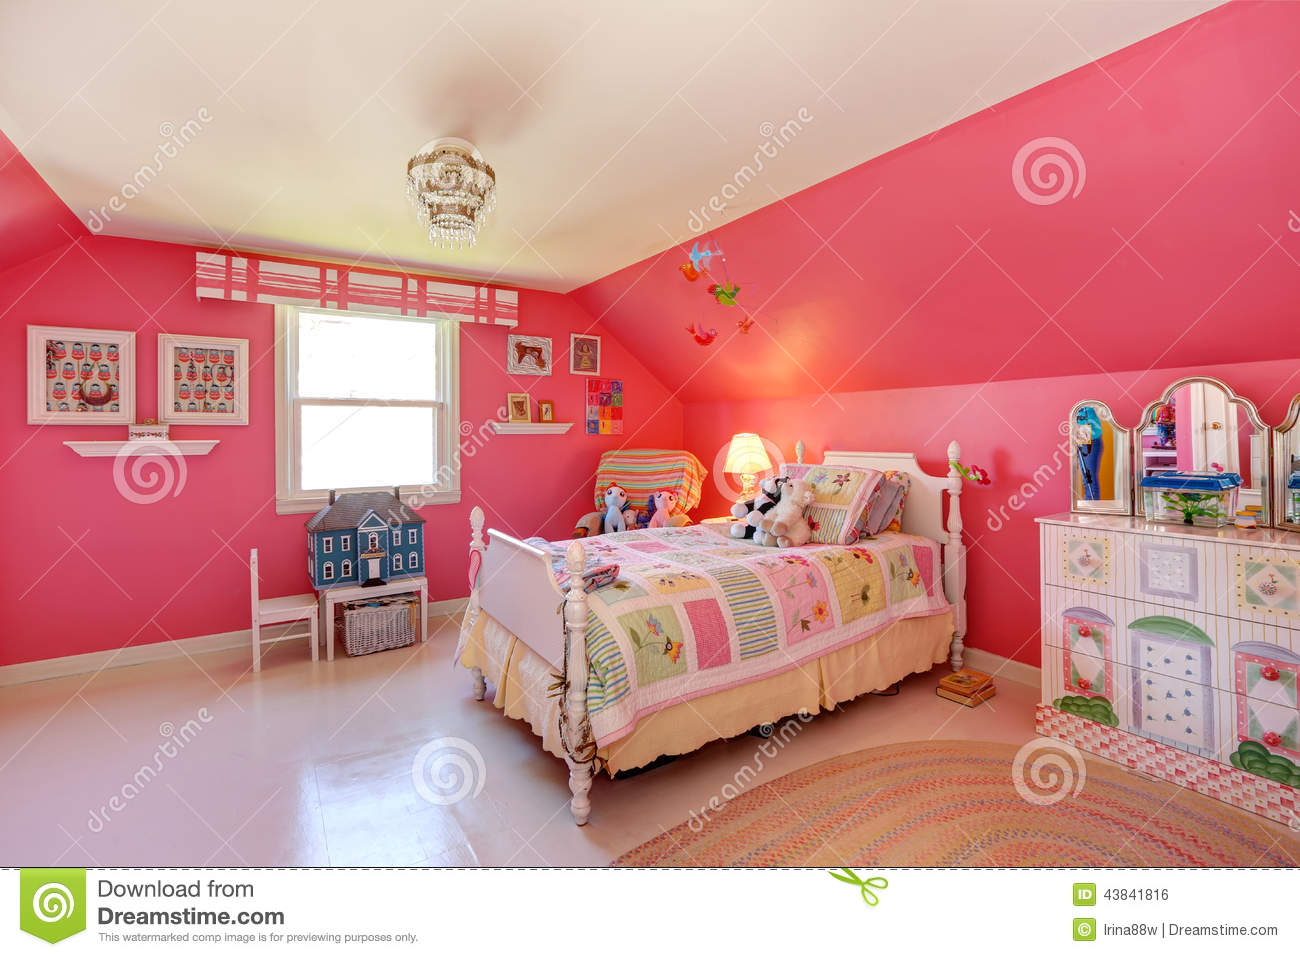 Beautiful girls room in bright pink color stock photo image 43841816 - Pics of beautiful room of girls ...